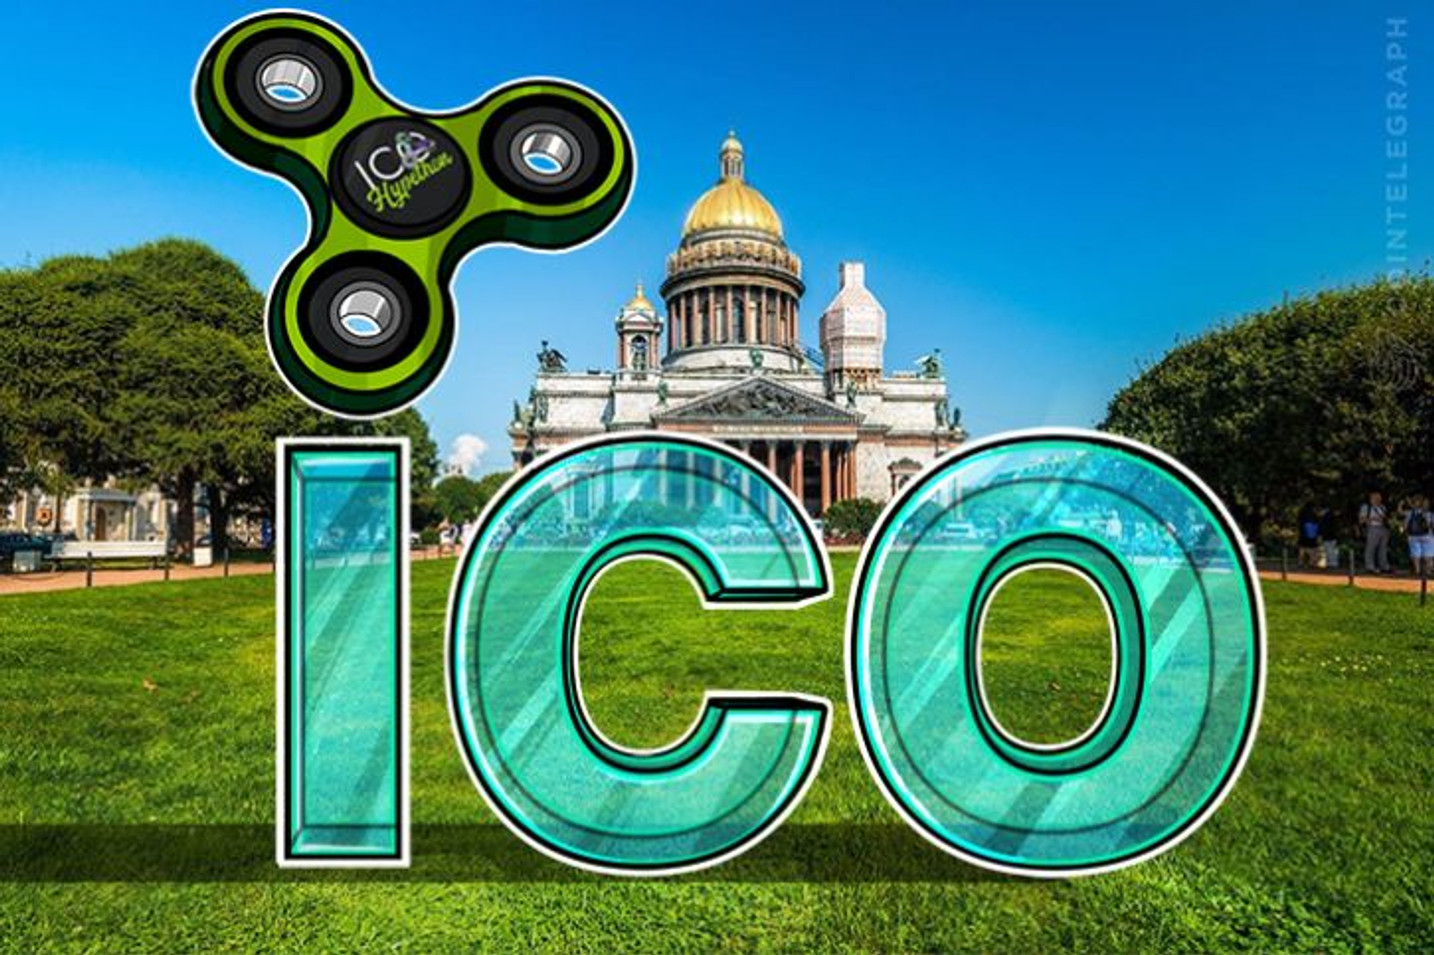 Blockchain Industry Gets Big Boost at ICO Hypethon in St. Petersburg, Russia